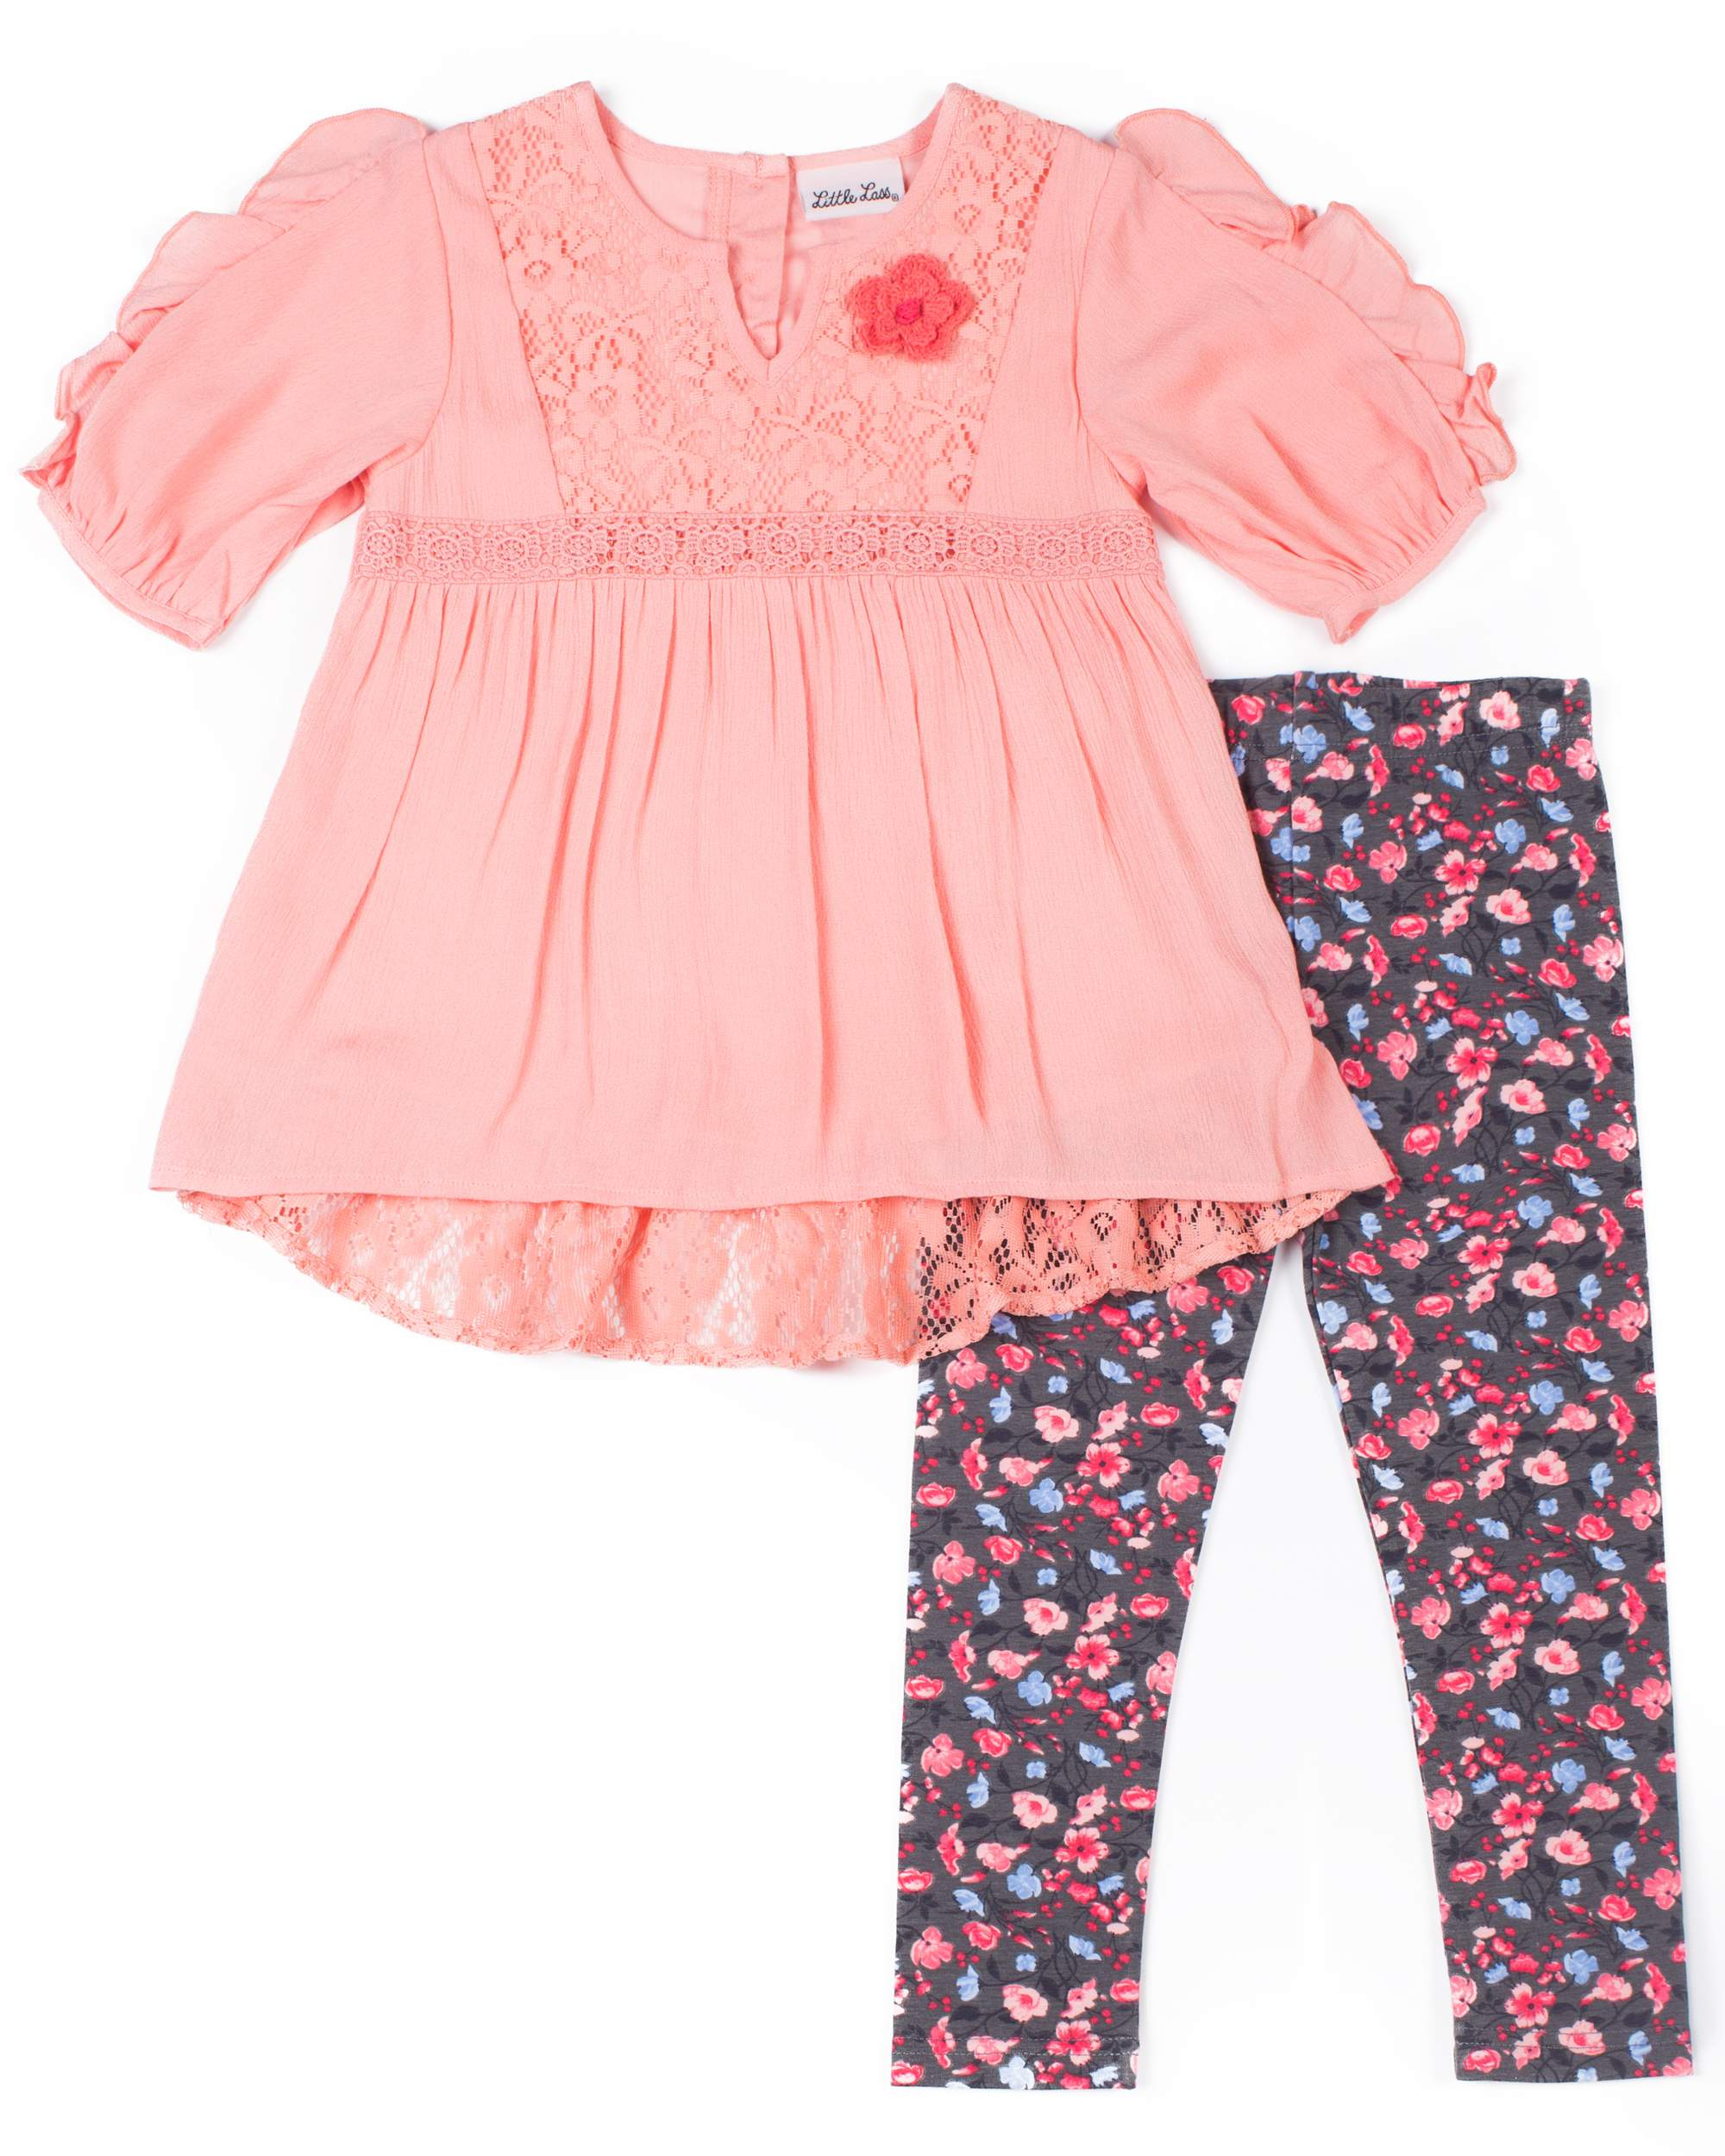 Chiffon Lace Detail Blouse & Floral Leggings, 2-Piece Outfit Set (Baby Girls)